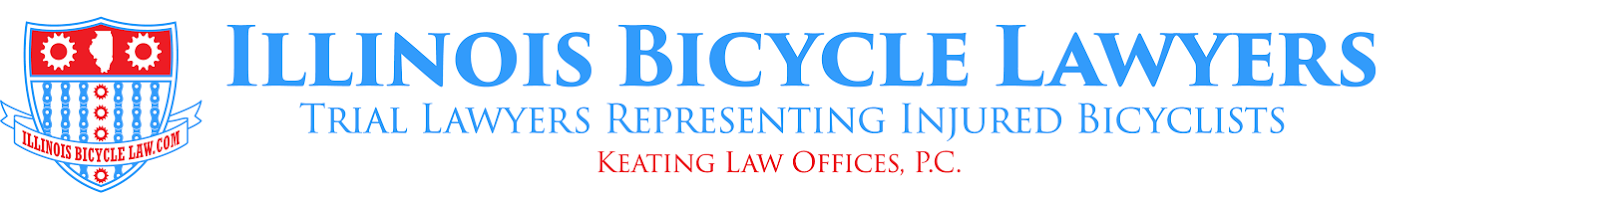 Chicago Bicycle Accident Lawyers | Illinois Bicycle Lawyers at Keating Law Offices